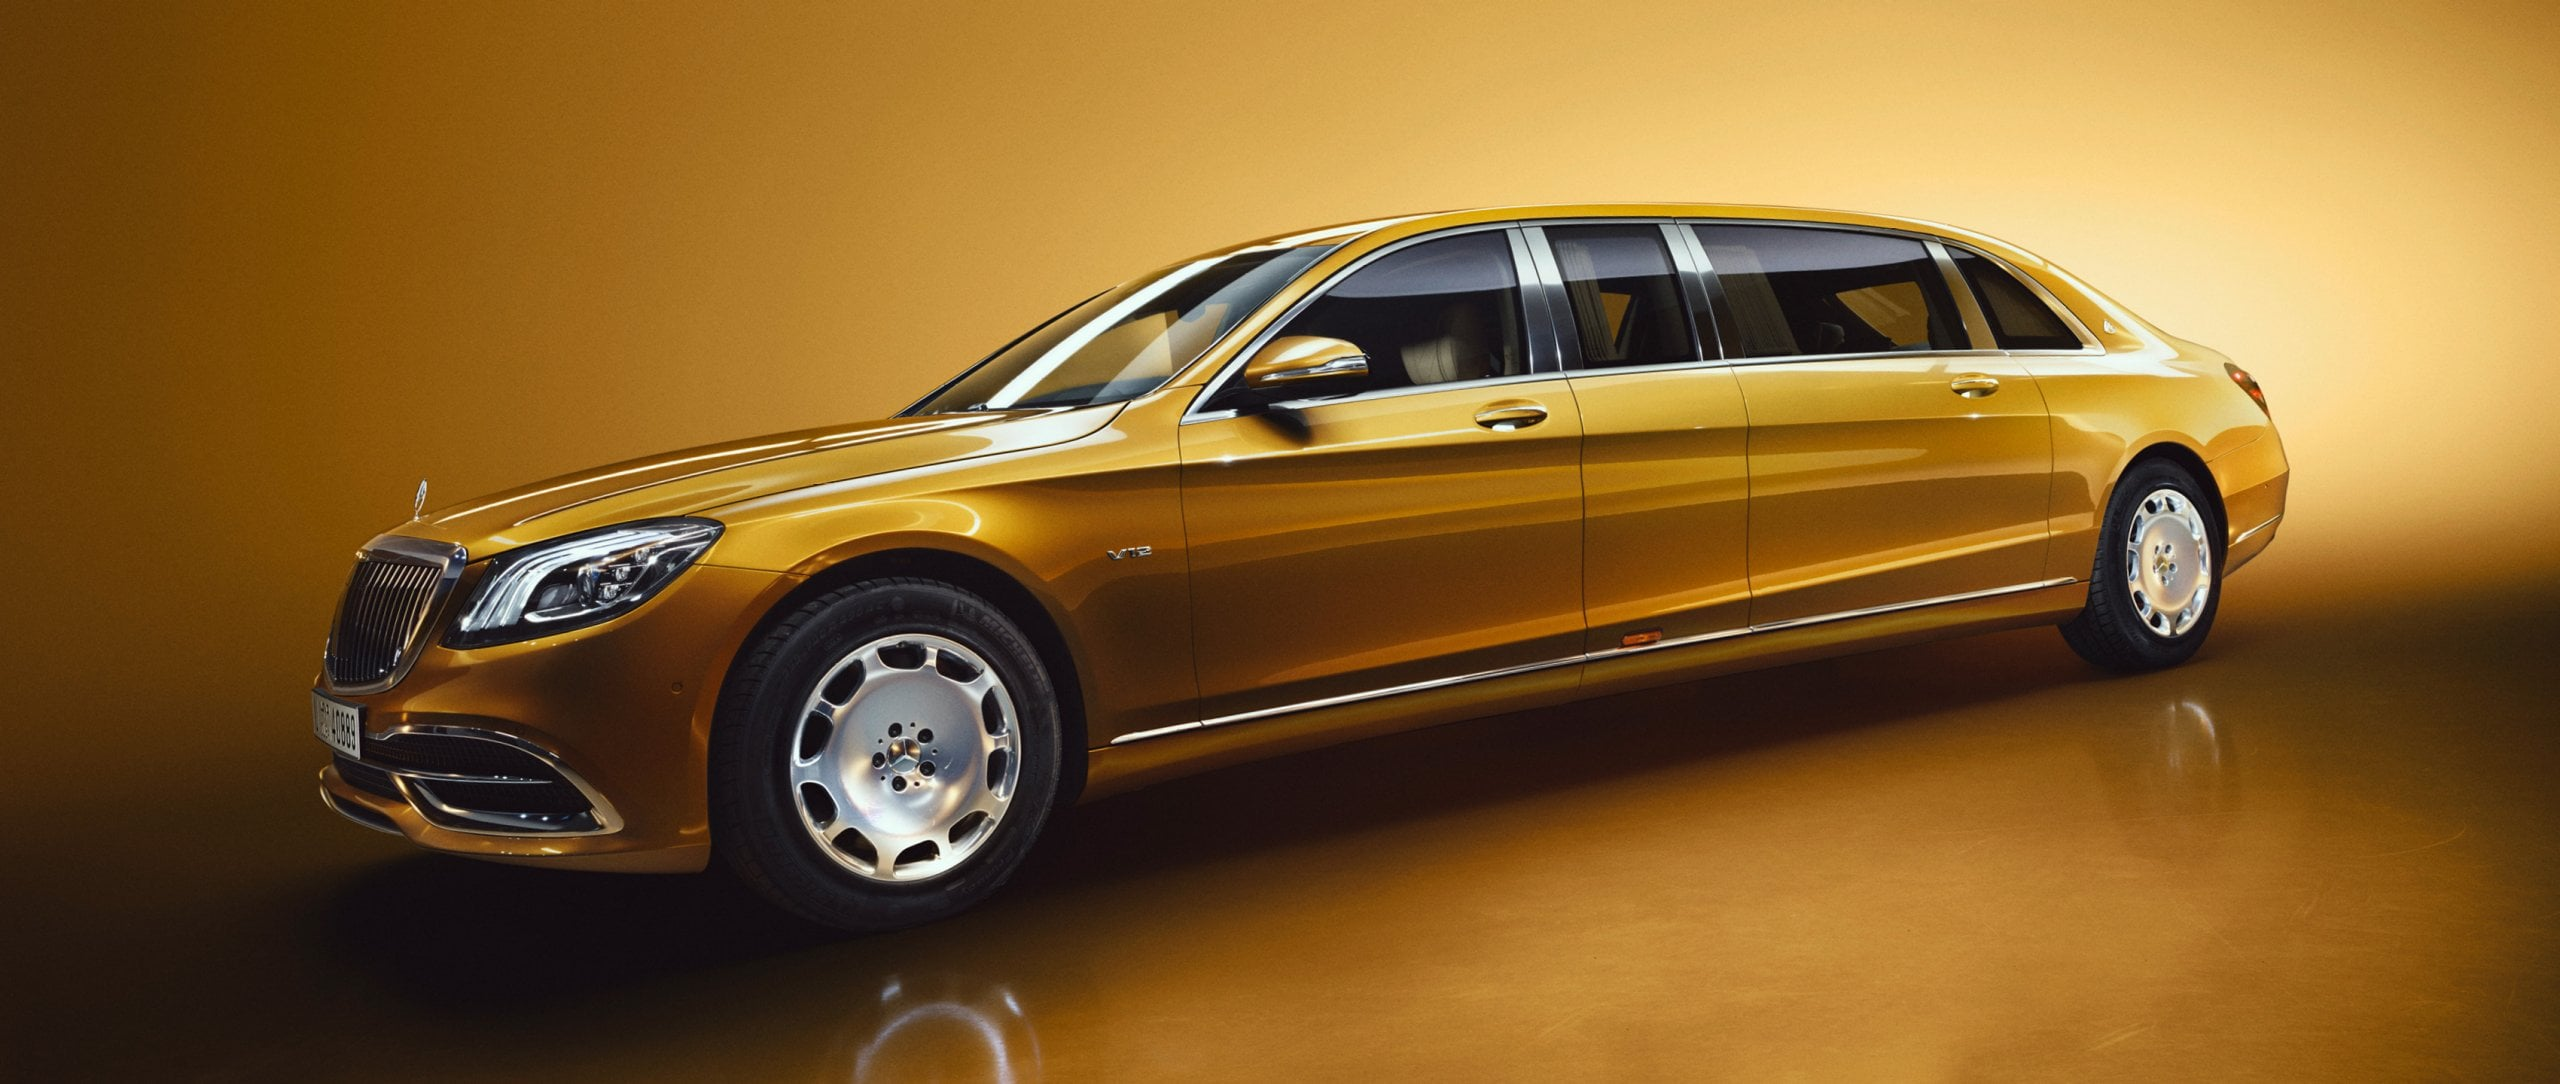 The Mercedes-Maybach S 650 Pullman in gold with golden background.